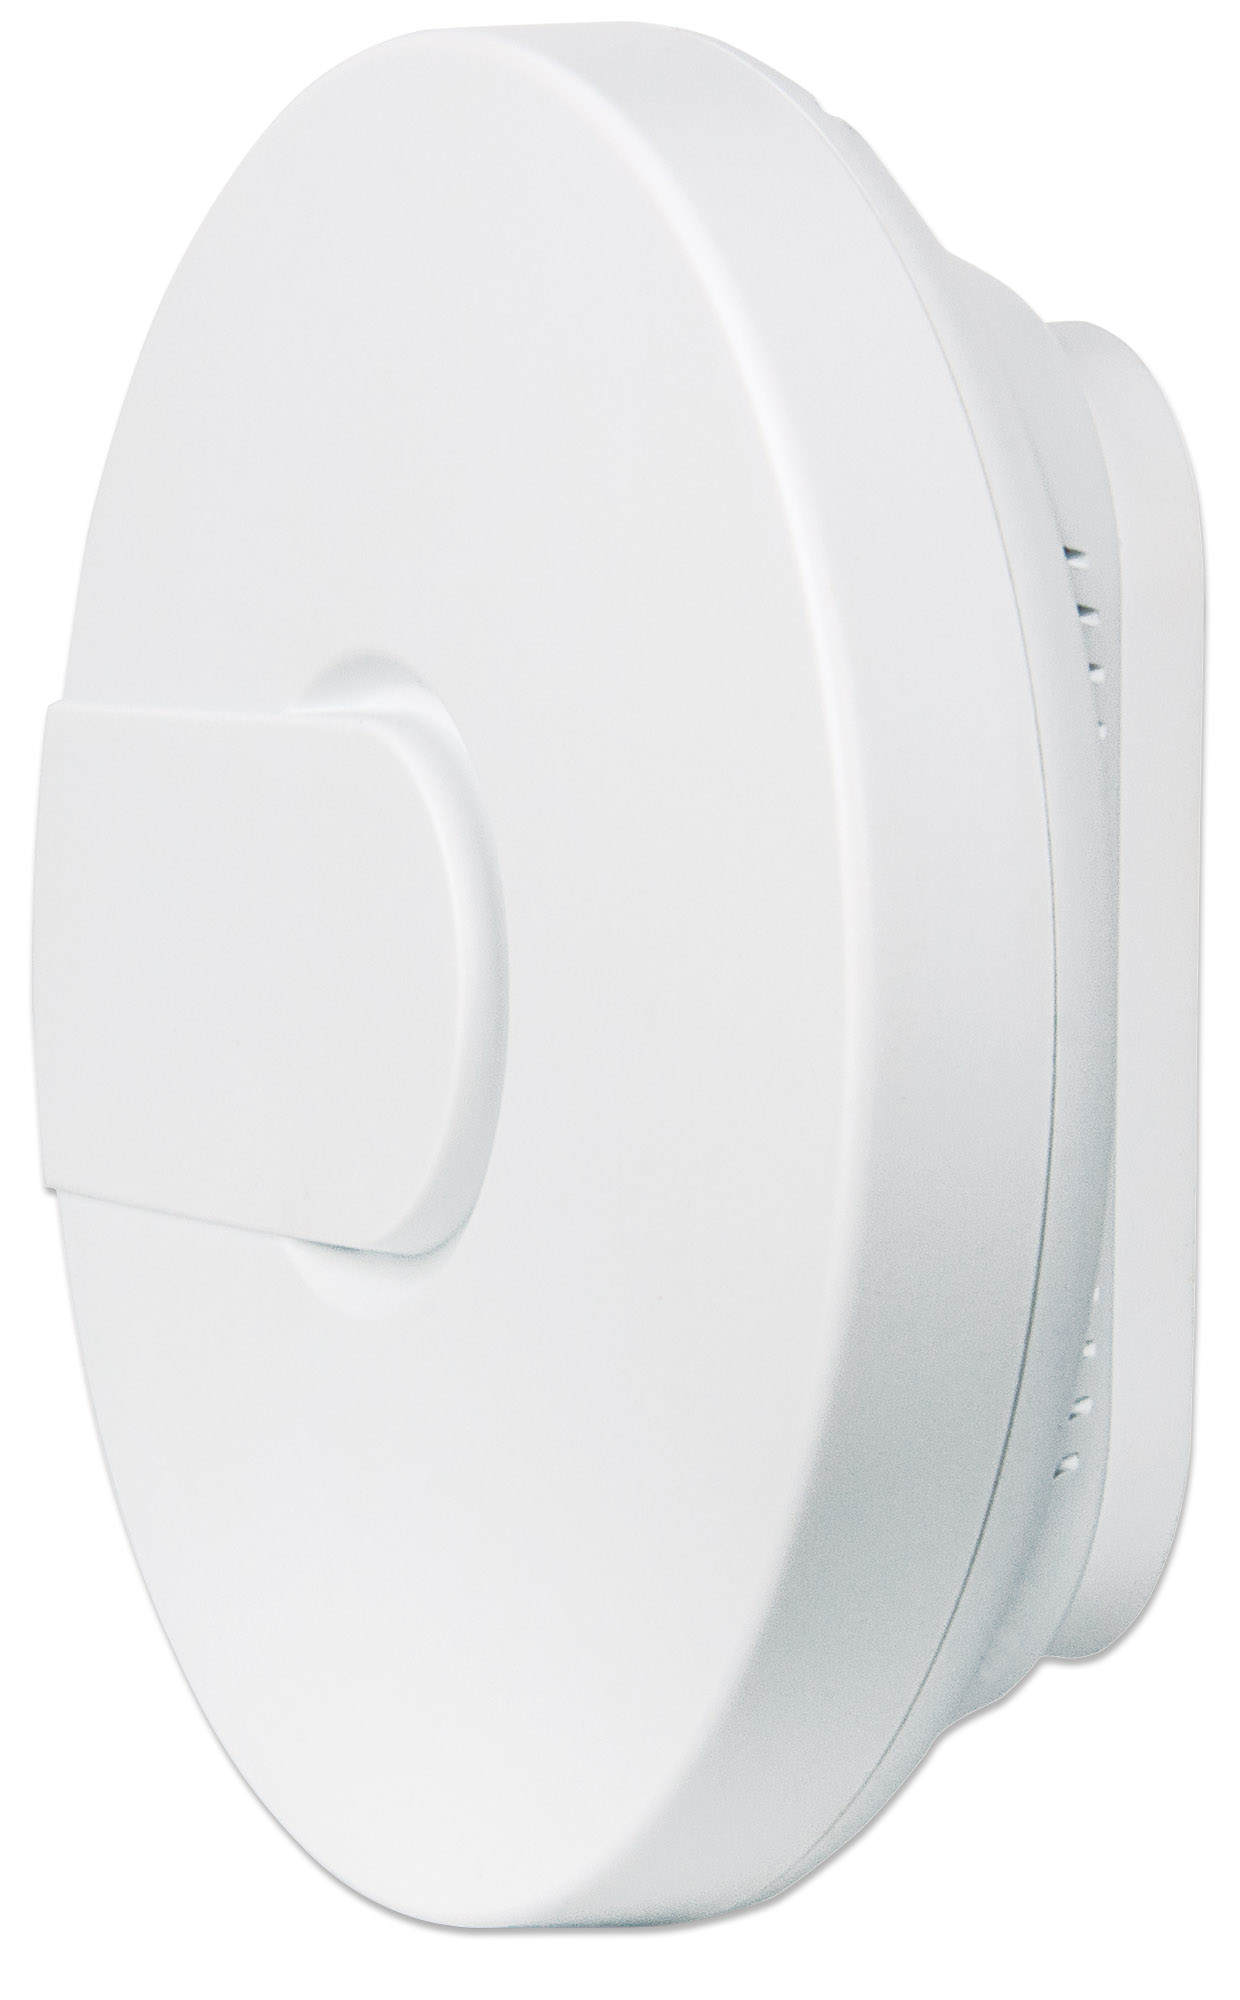 High-Power Ceiling Mount Wireless 300N PoE Access Point